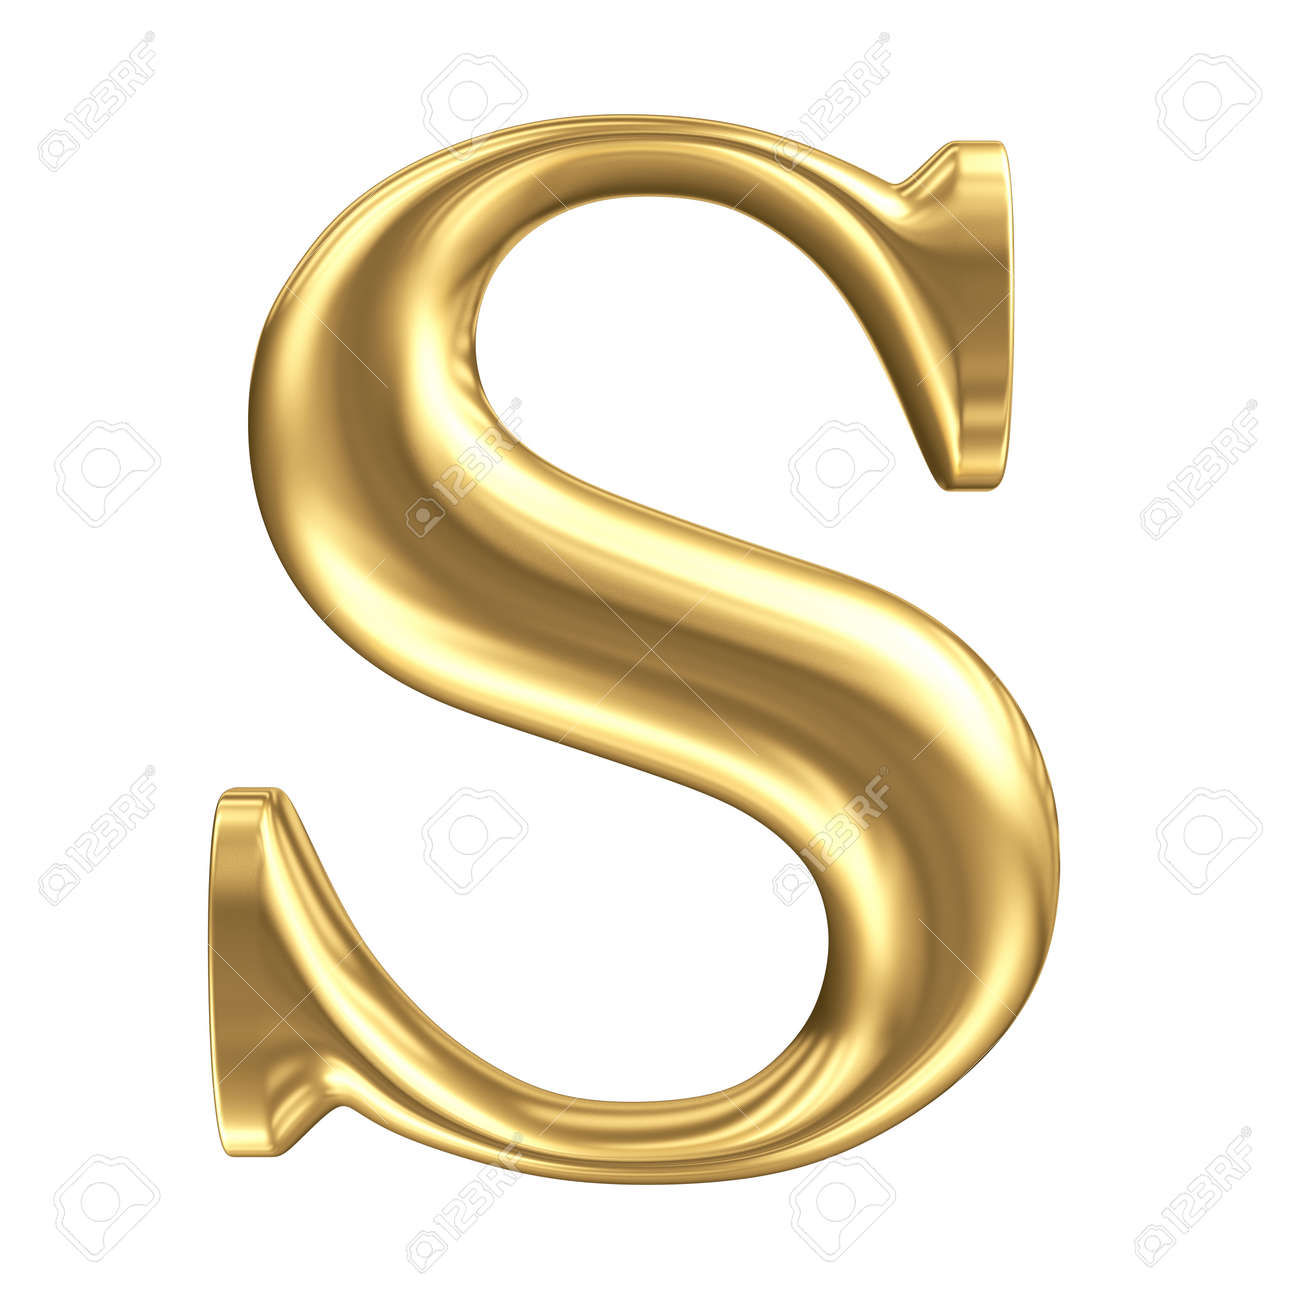 golden matt letter s